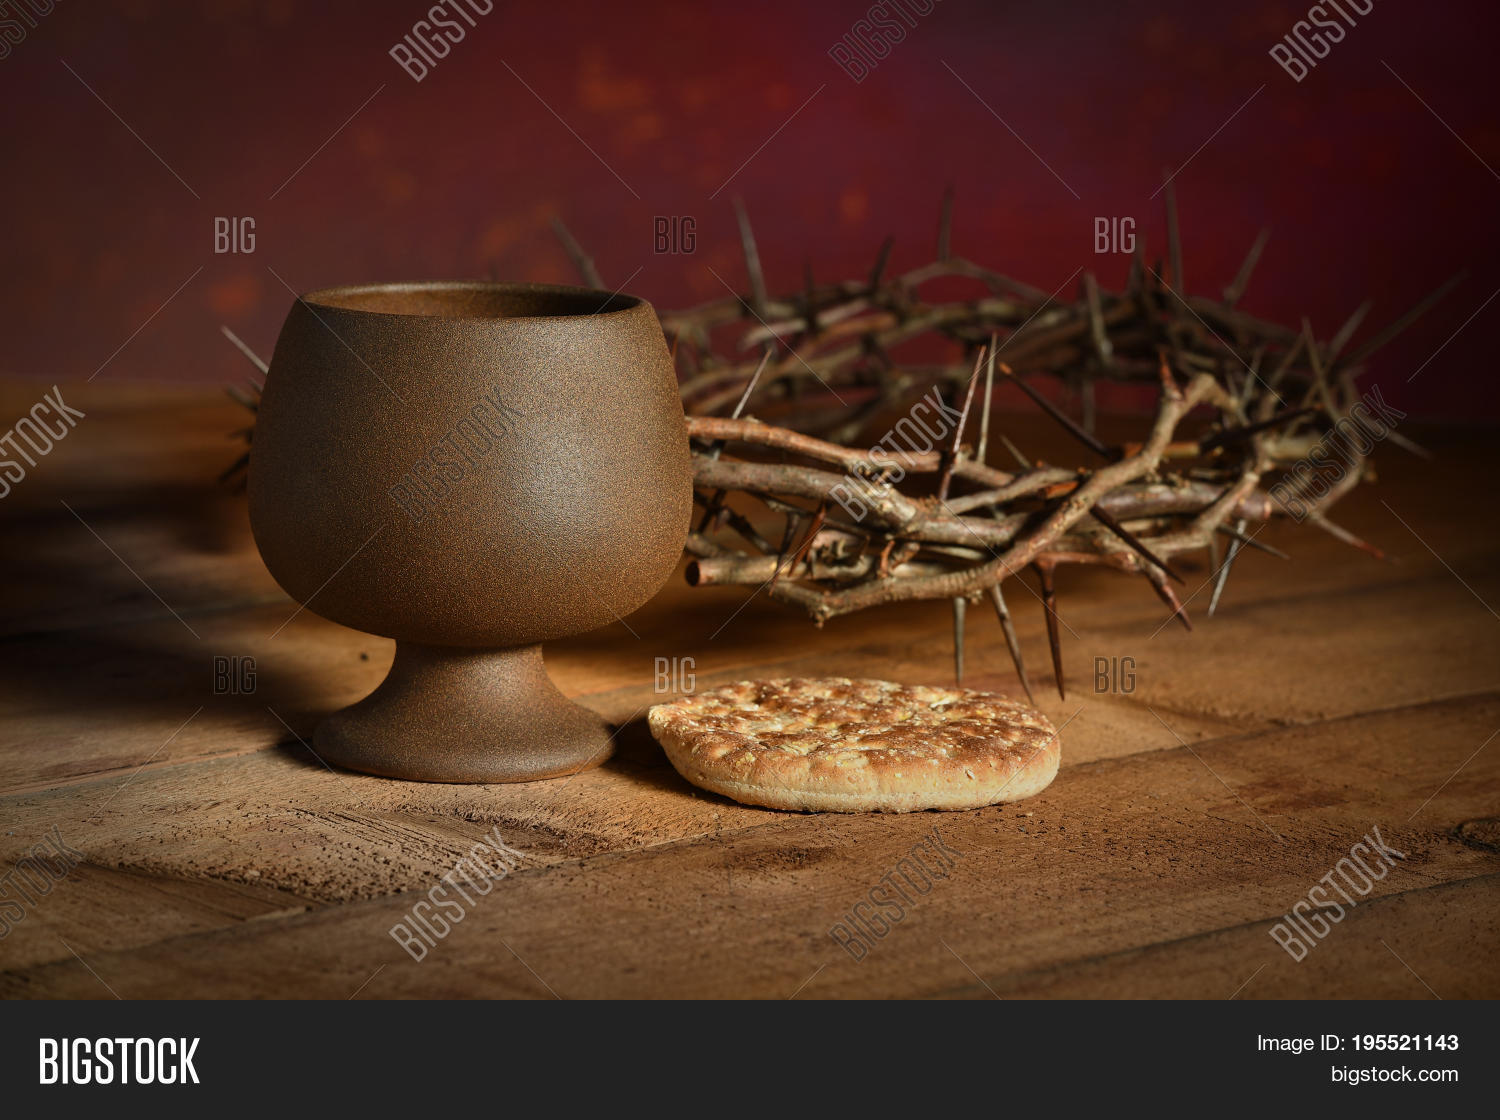 communion table bread image & photo (free trial) | bigstock